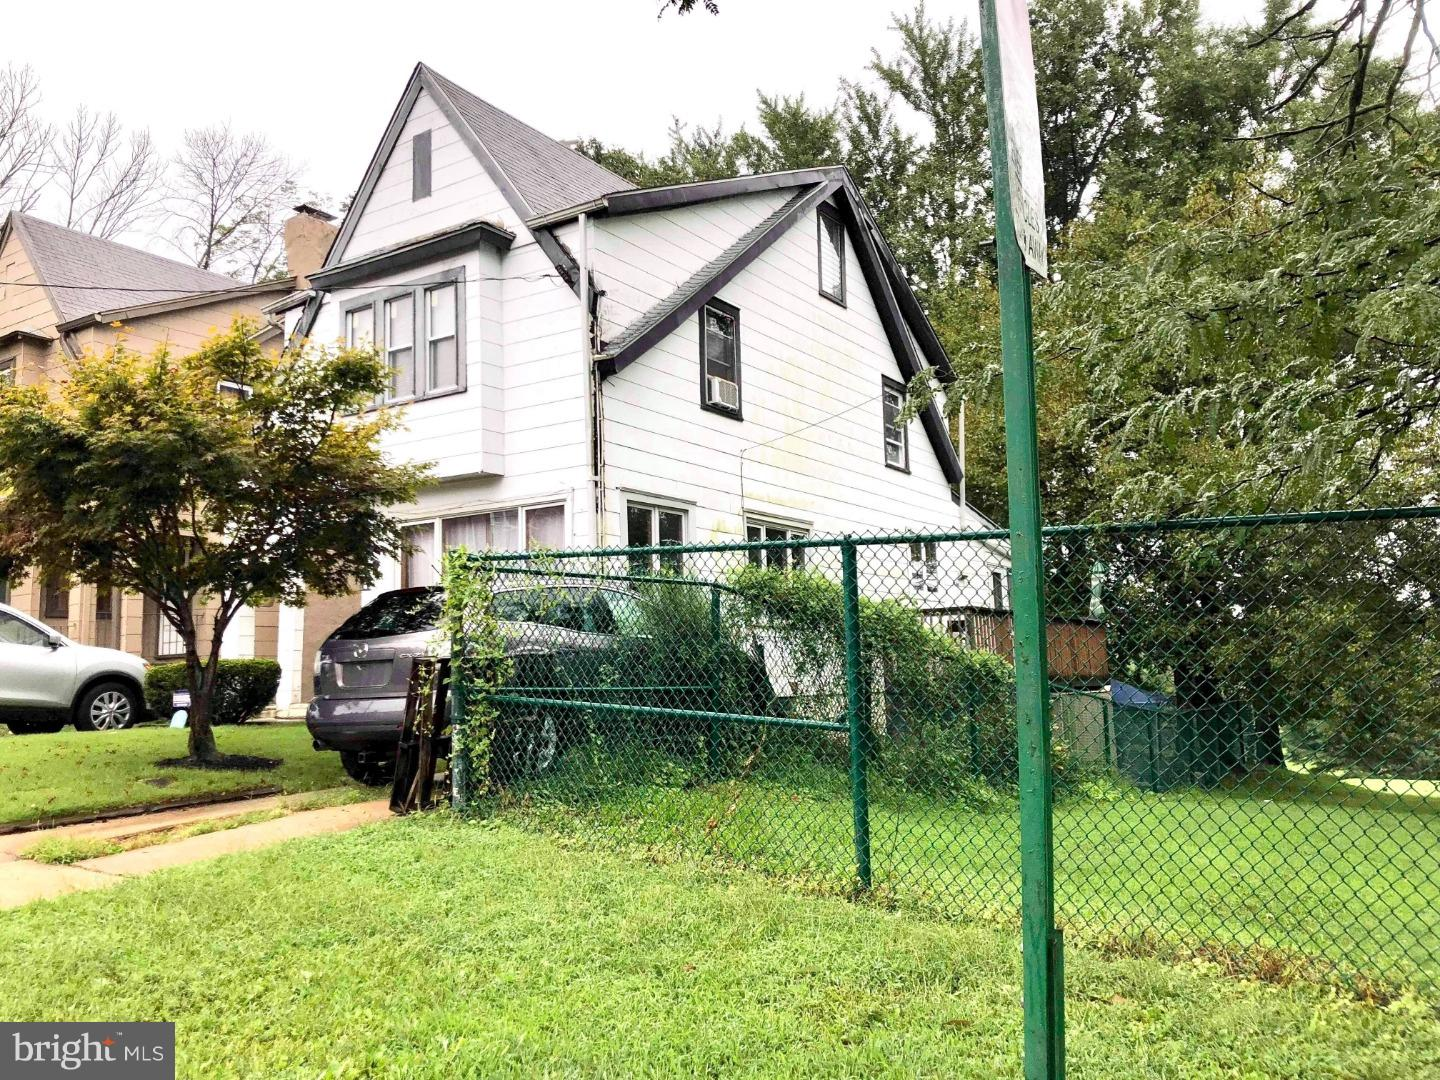 180 SAINT LAURENCE ROAD, UPPER DARBY, PA 19082